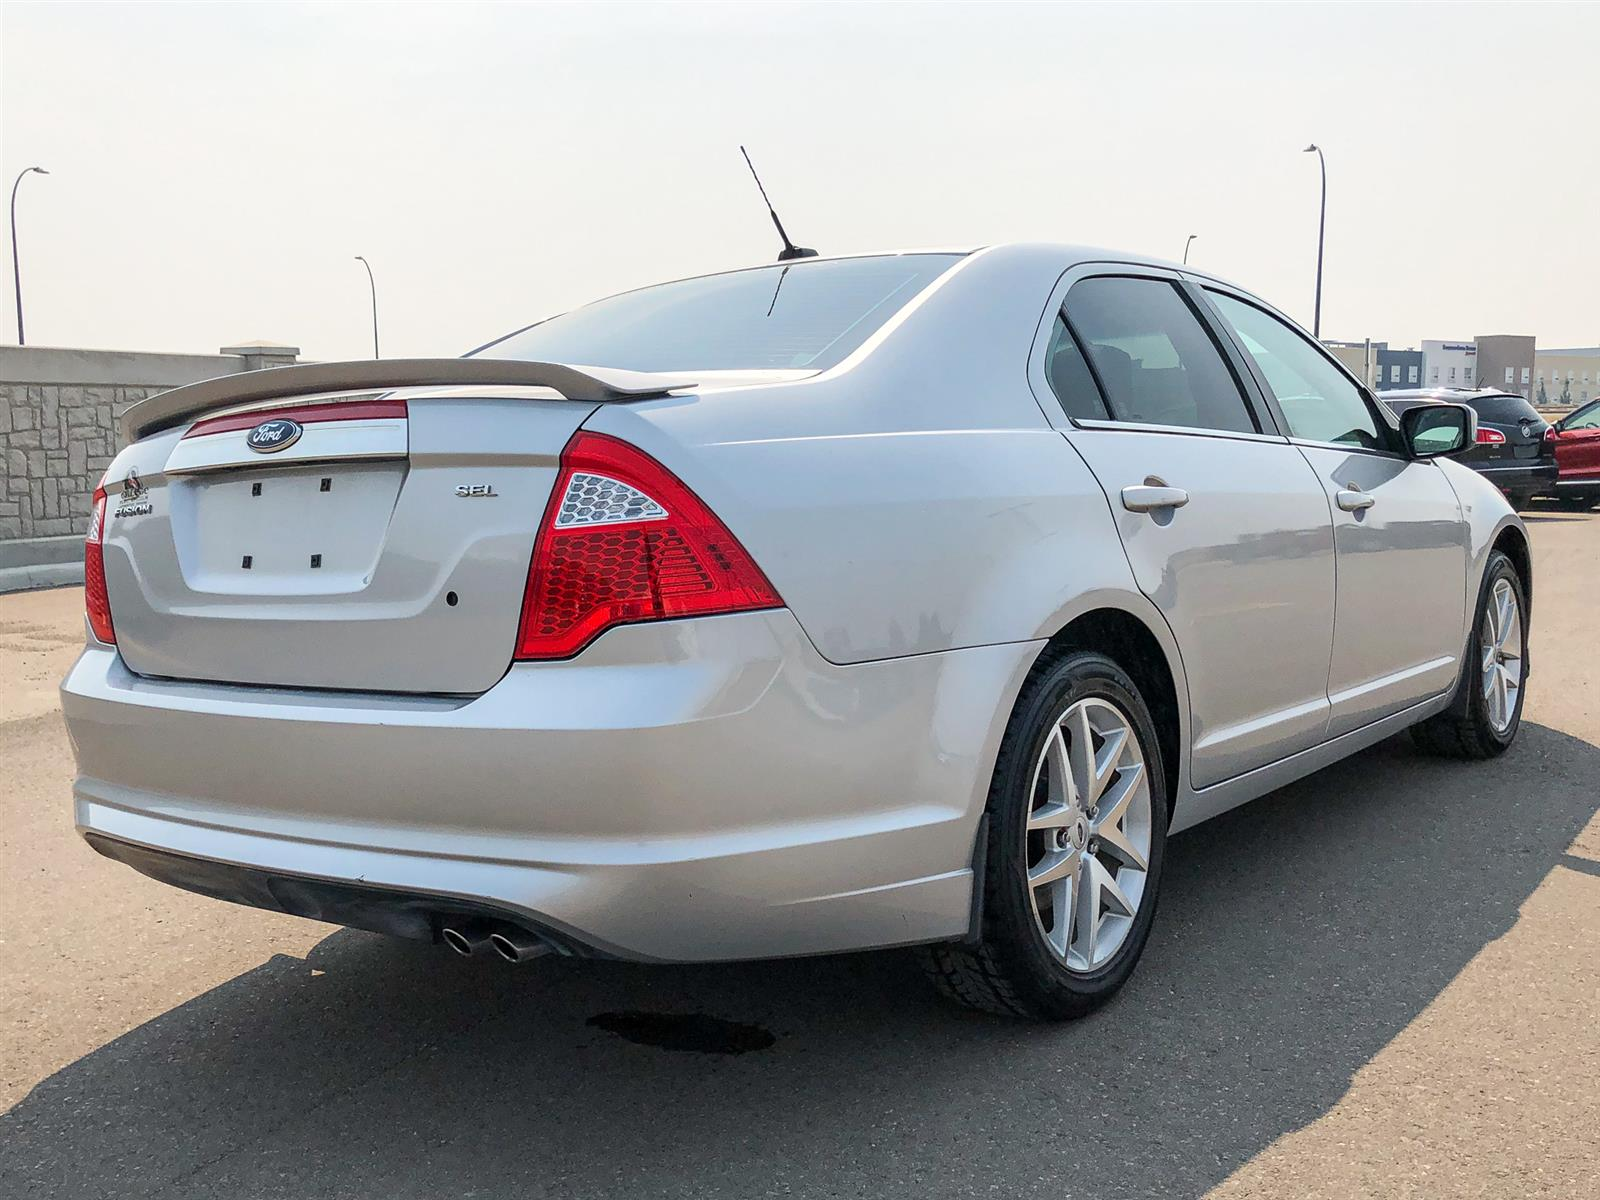 2010 Ford Fusion SEL | 2.5L I4 | POWER MOONROOF | HEATED FRONT SEATS | SONY AUDIO